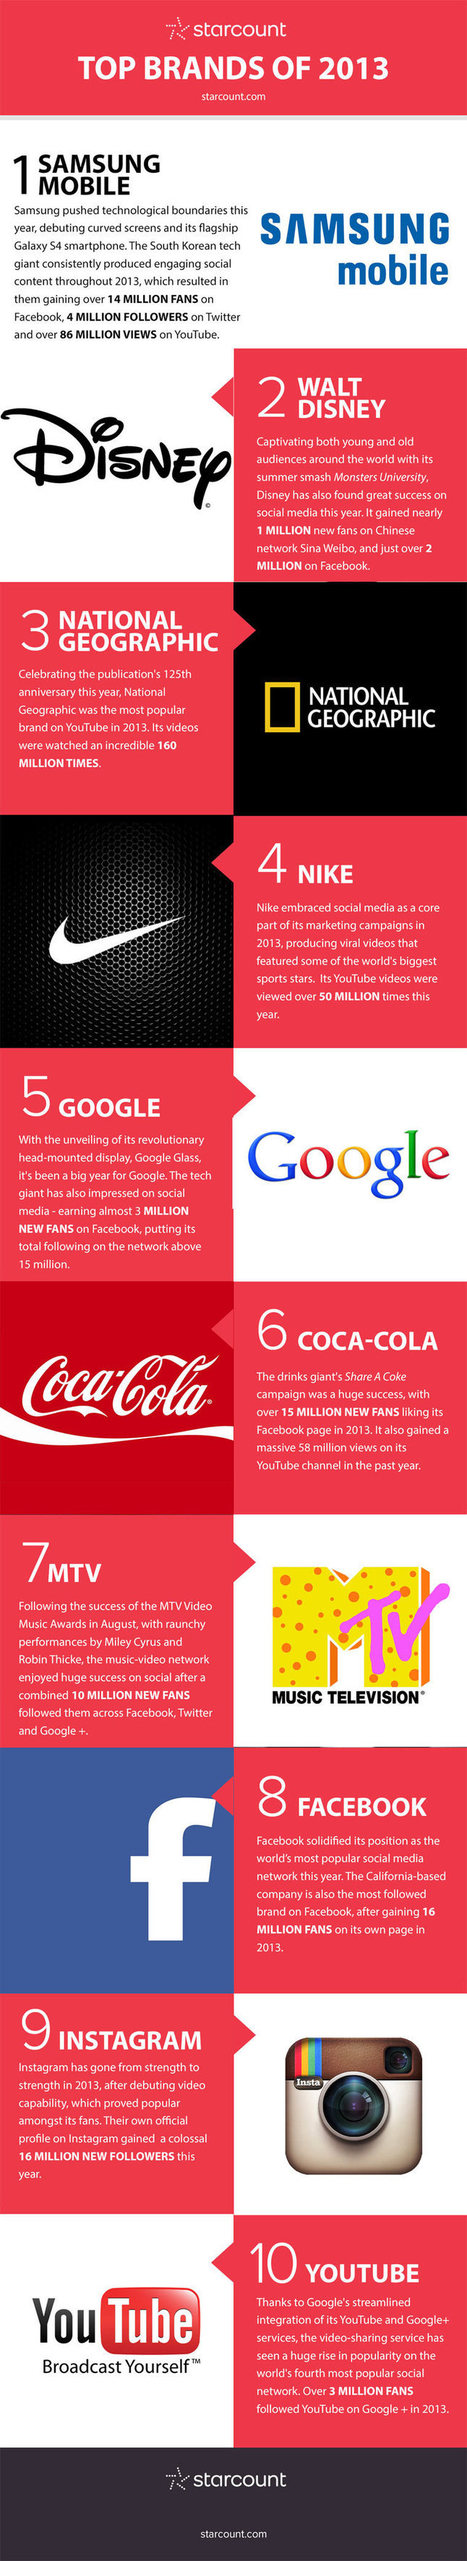 Top 10 Brands on Social Media in 2013 an Infographic | Personal branding and social media | Scoop.it